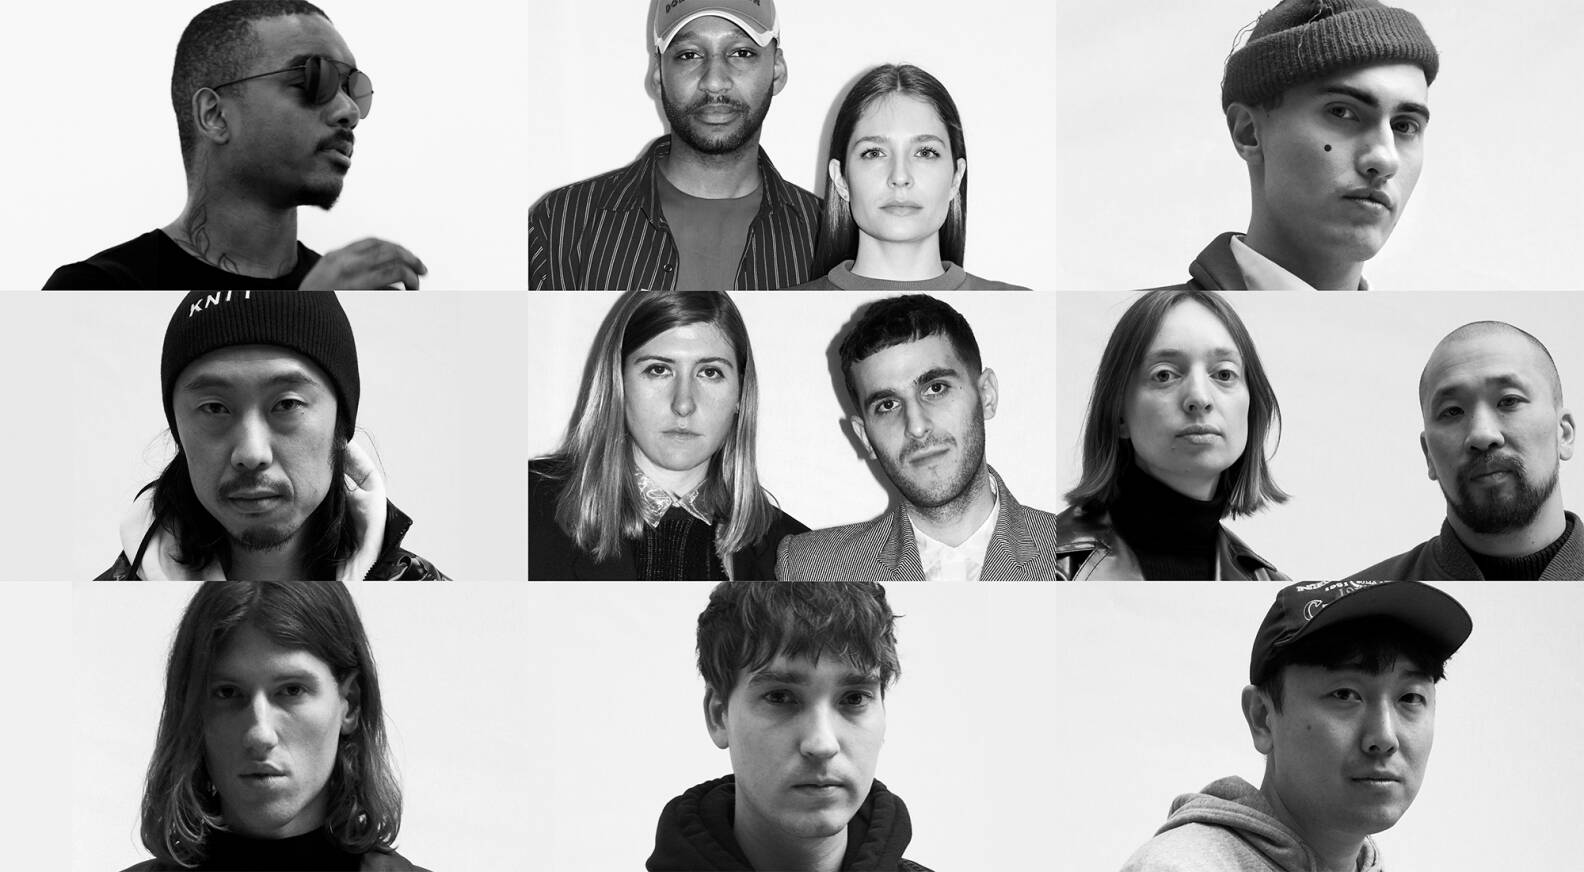 Lvmh Prize For Young Fashion Designers 2018 Lvmh Announces The List Of The 9 Finalists Lvmh